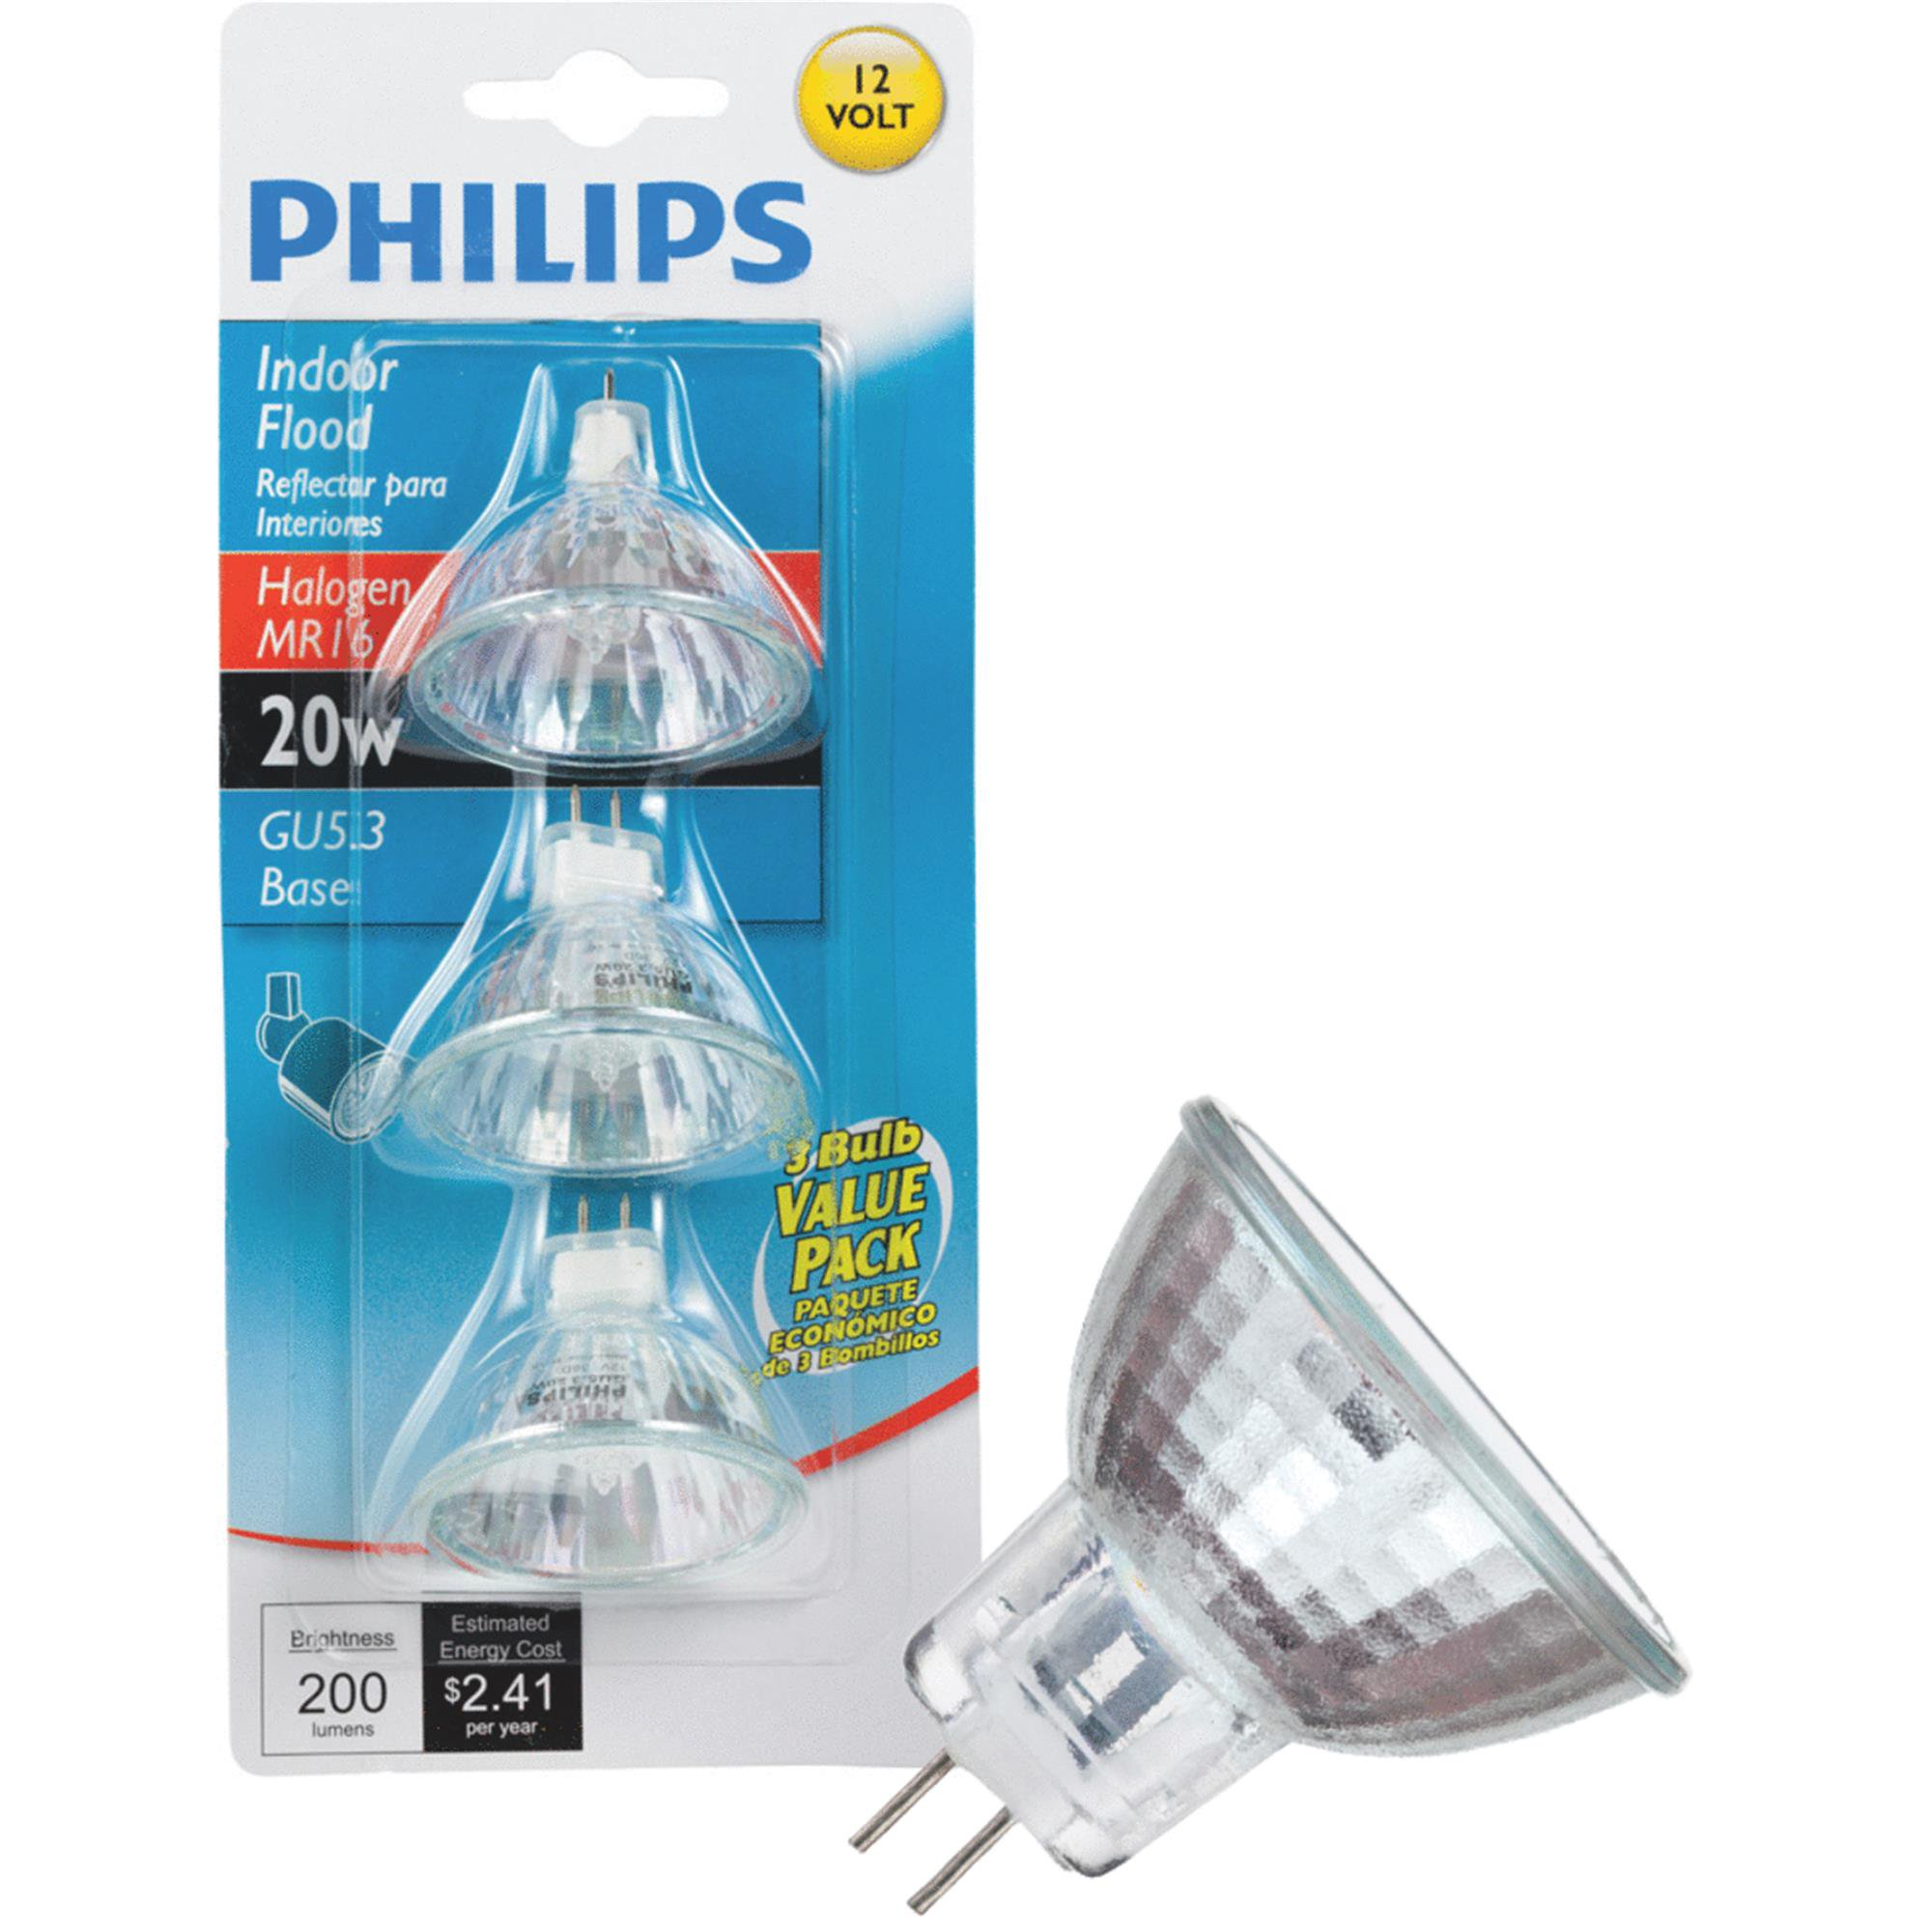 Philips 415687 Indoor Flood 20-Watt MR16 12-Volt Light Bulb, 3-Pack